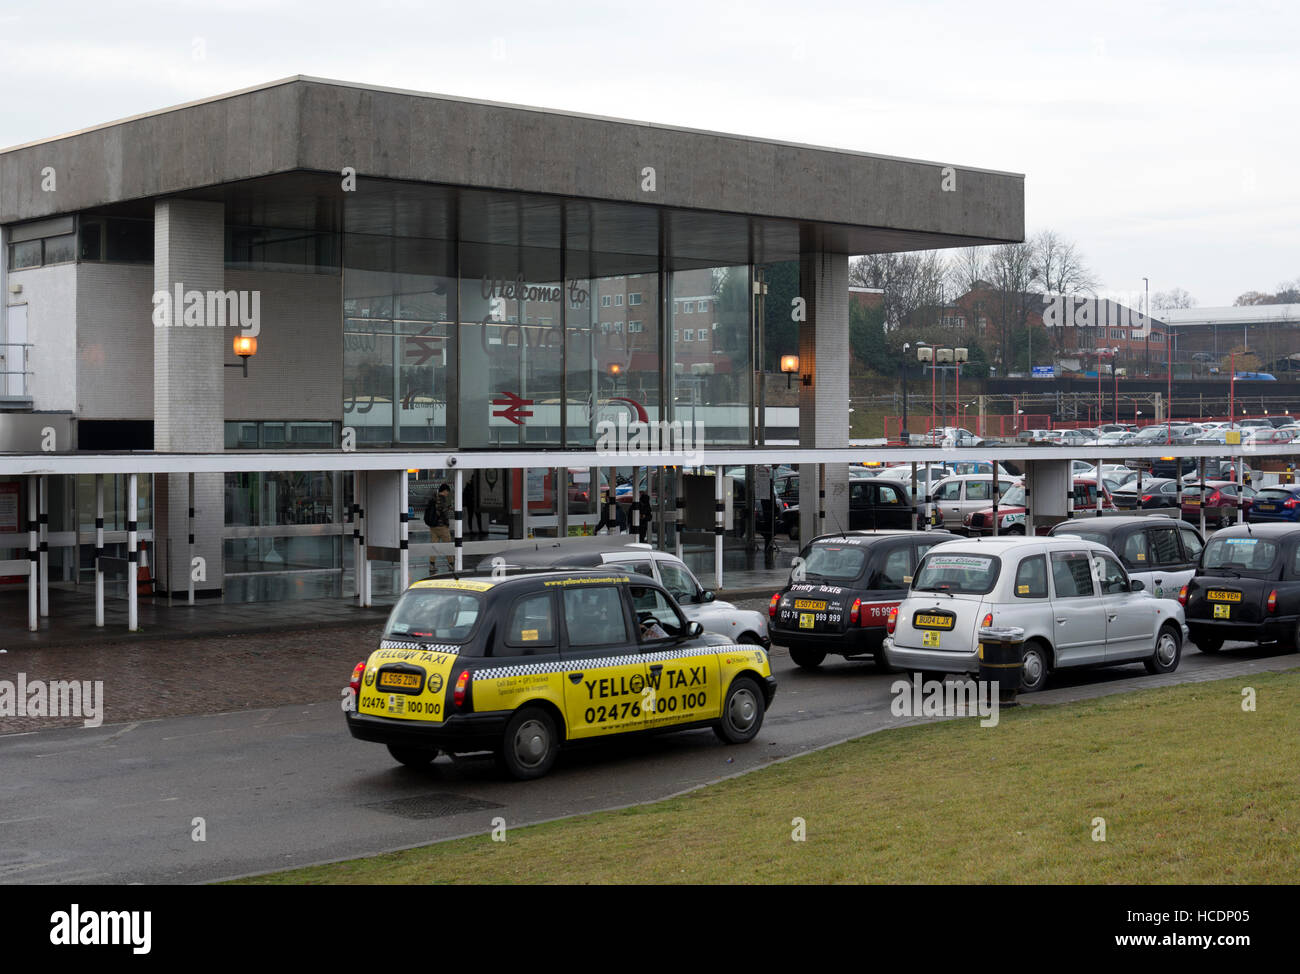 Taxis outside Coventry railway station, West Midlands, England, UK - Stock Image